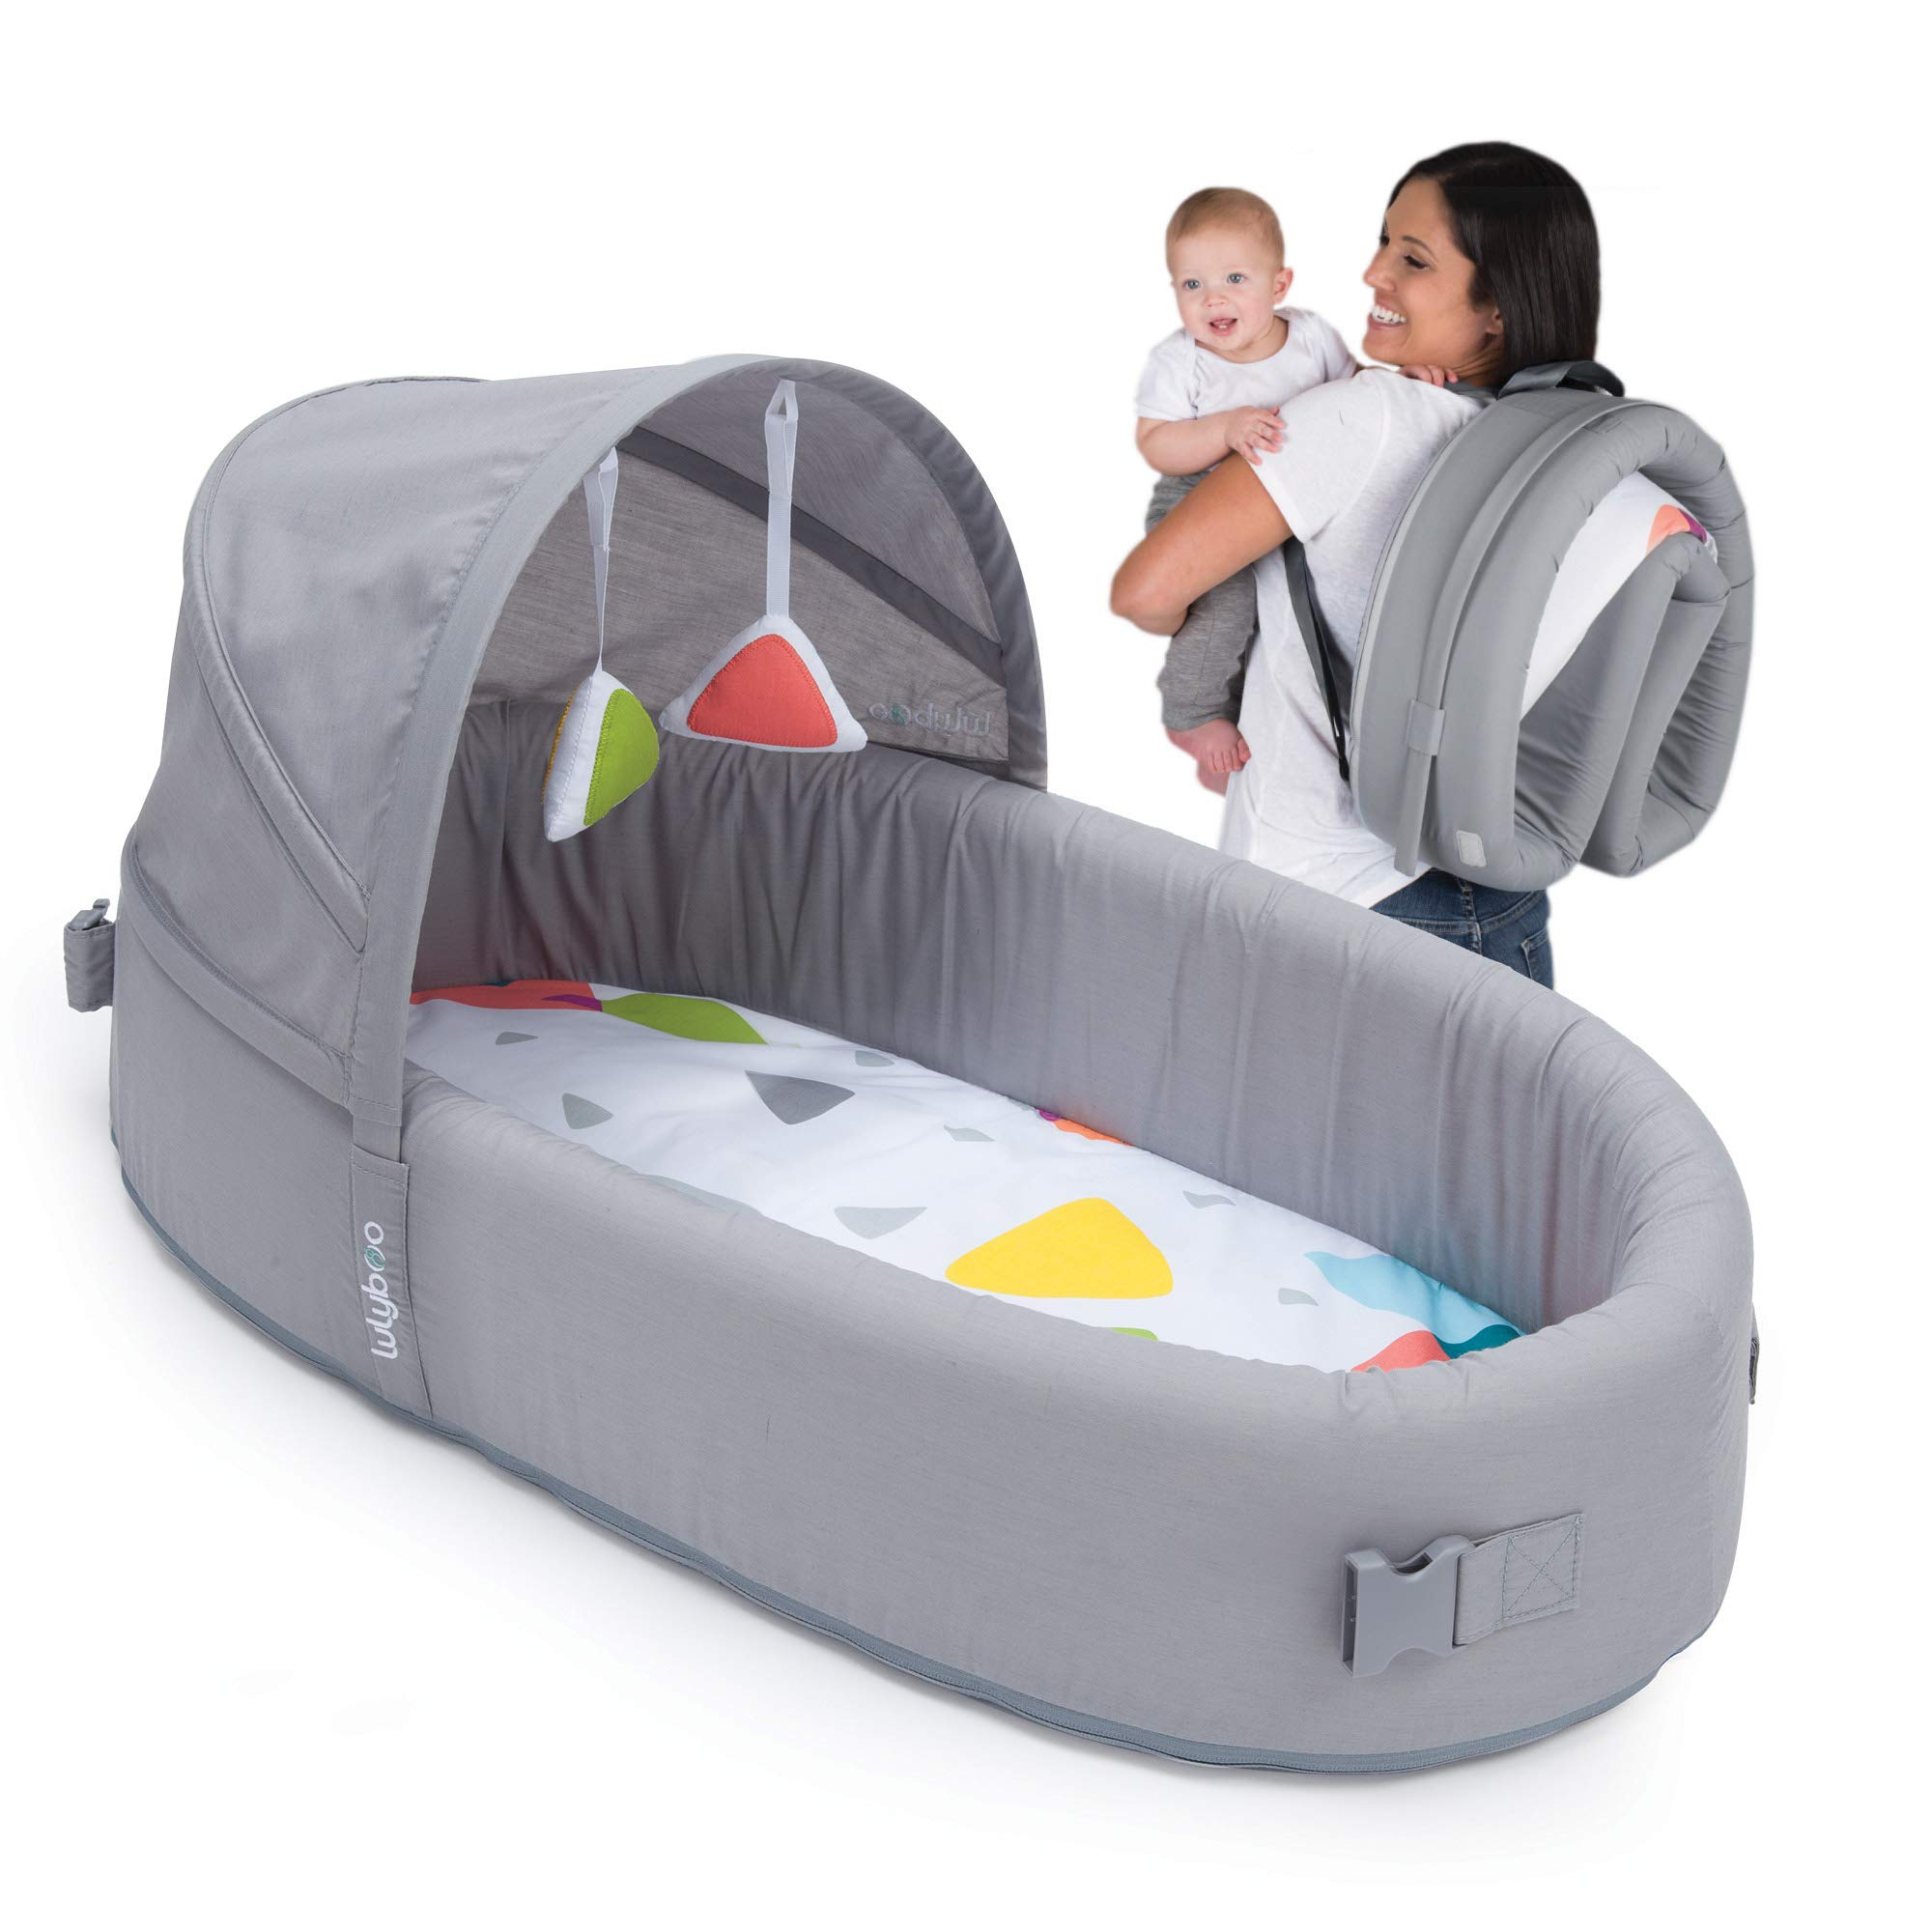 Lulyboo Bassinet To-Go Metro by Lulyboo